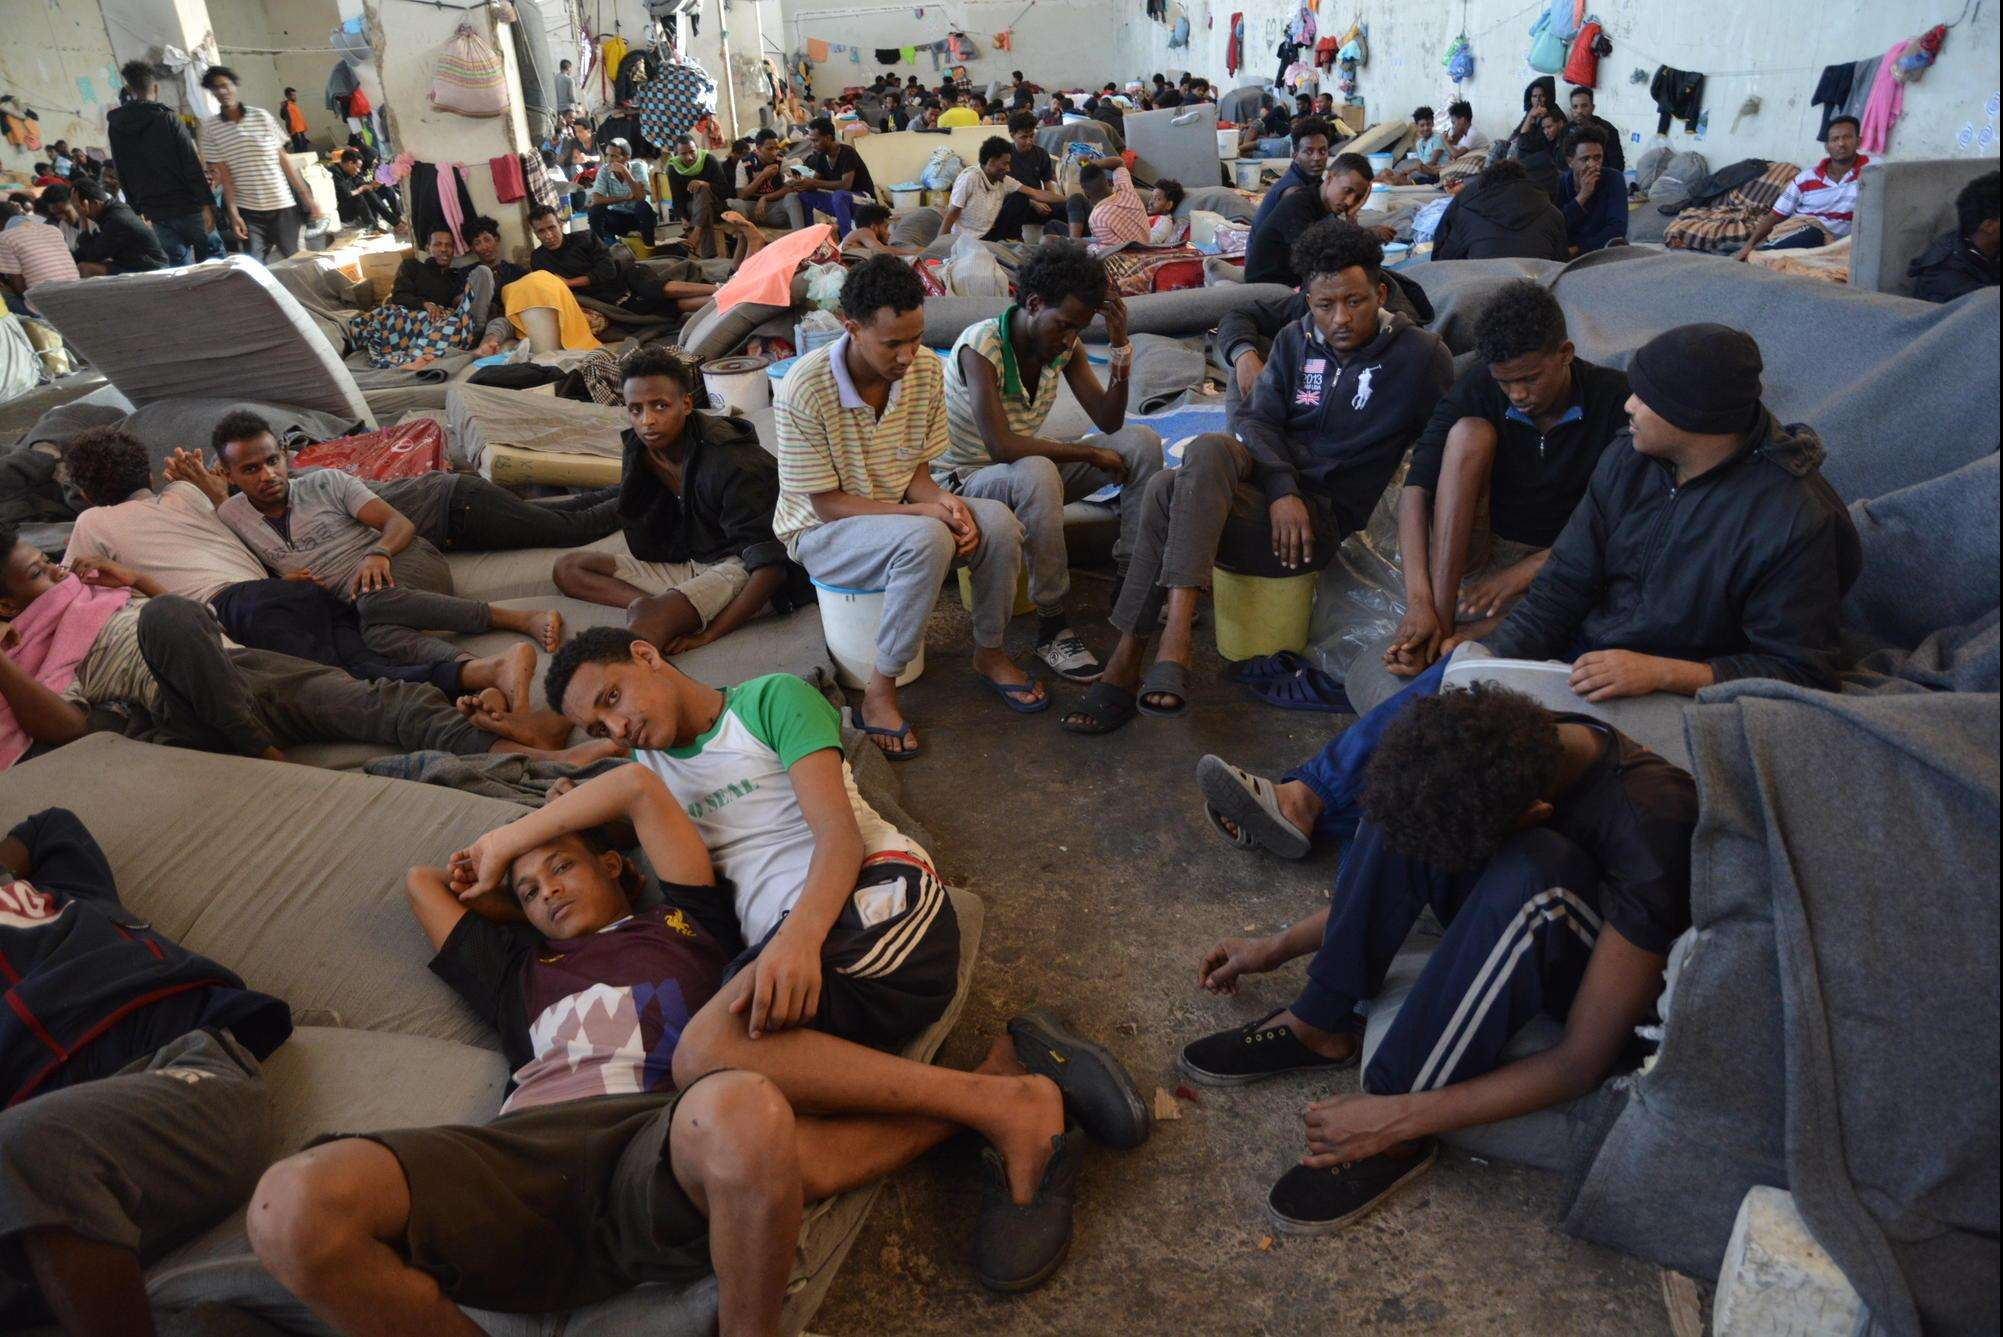 Refugees face death, disease, and despair in Libya's detention centers